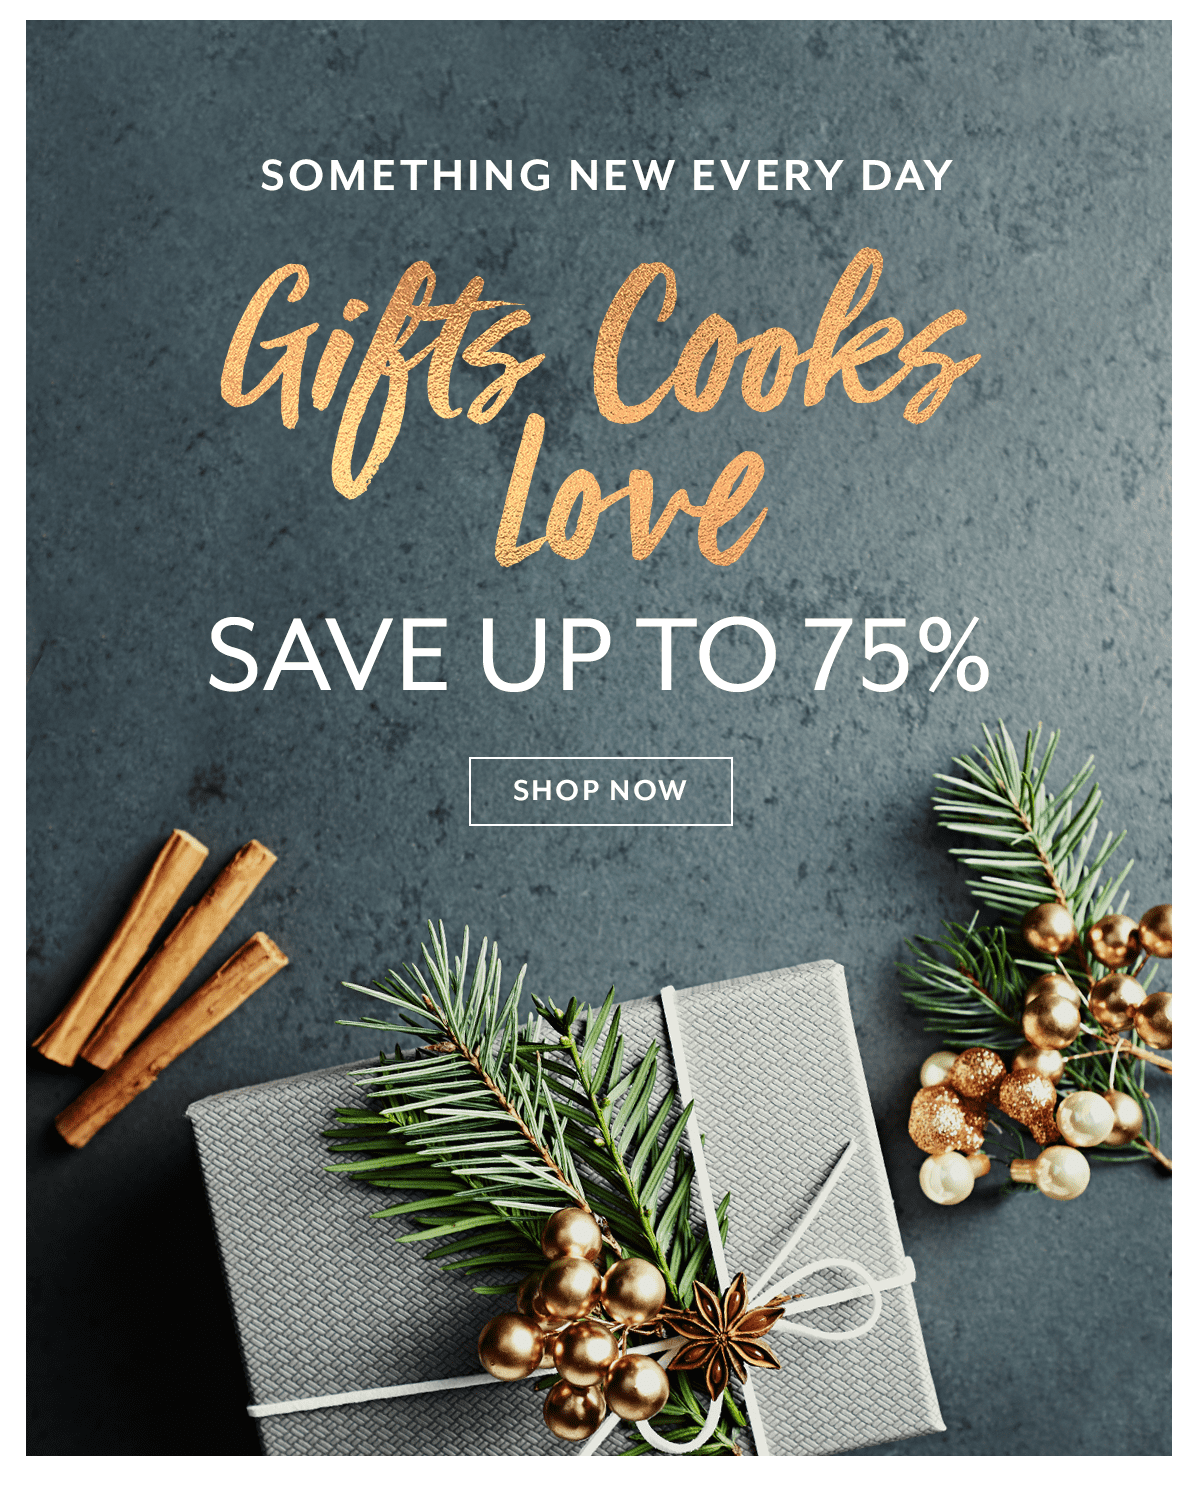 Gifts Cooks Love